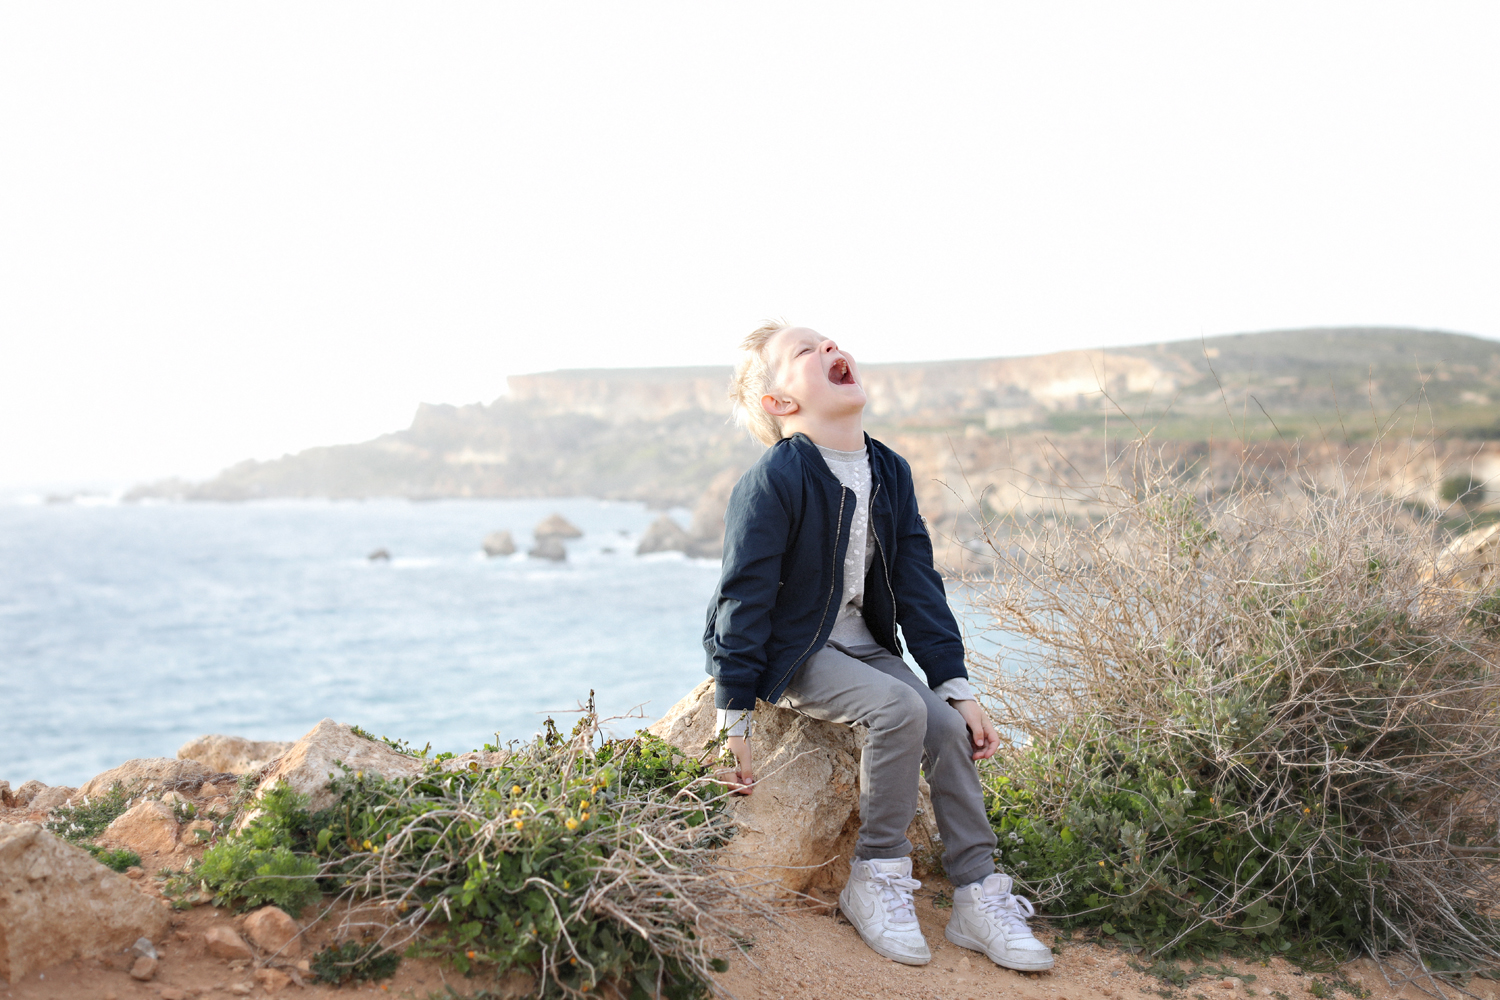 golden bay malta, cliffs, natural light photographer, laughter, whimsical, kids photography, bomber jacket, swedish photographer malta